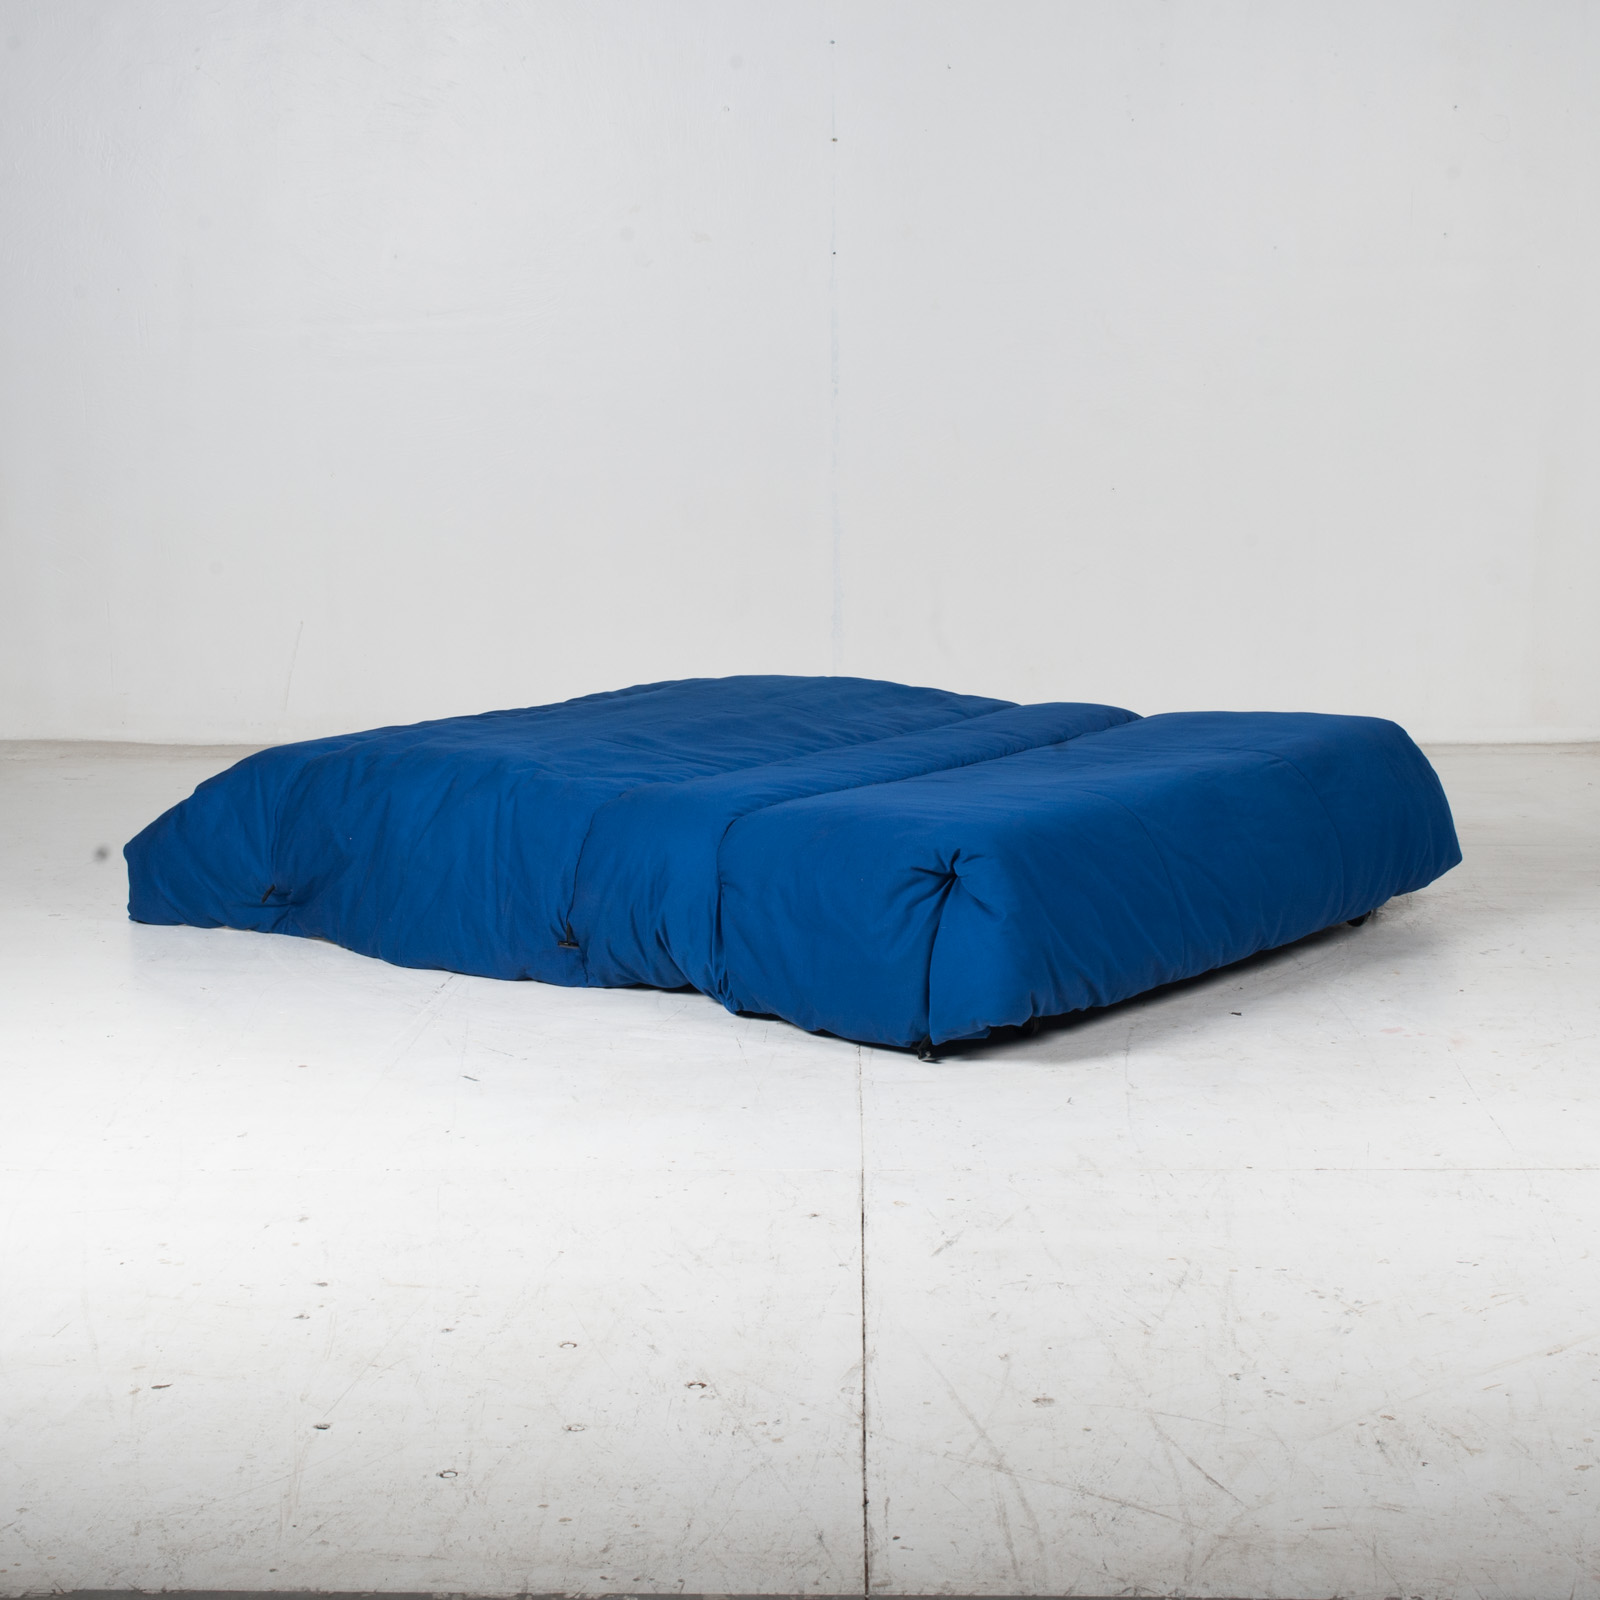 Sofa Bed By Ligne Roset In Blue Upholstery, 1960s, France12